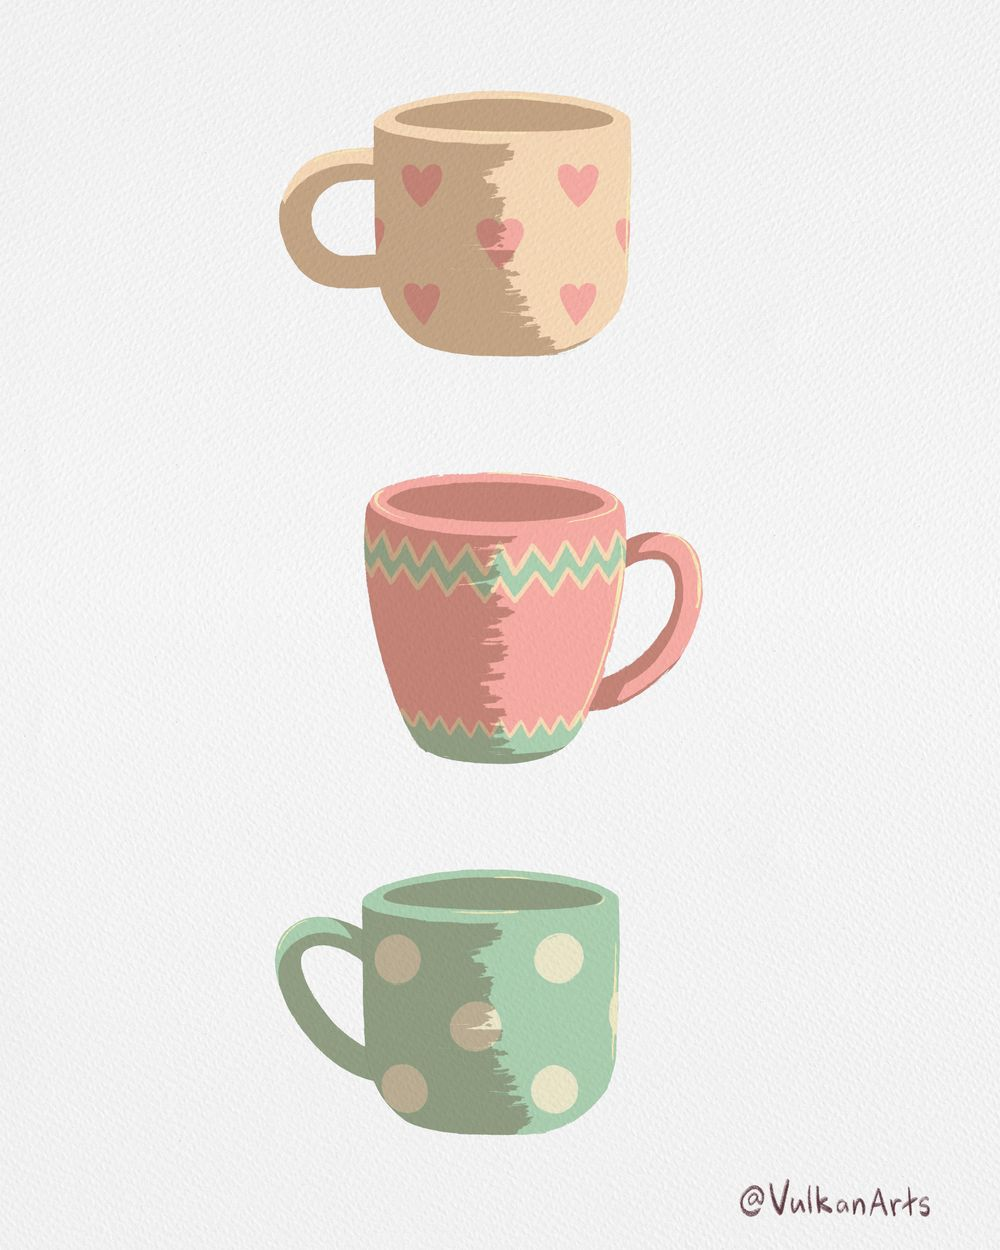 Bugs and mugs - image 4 - student project